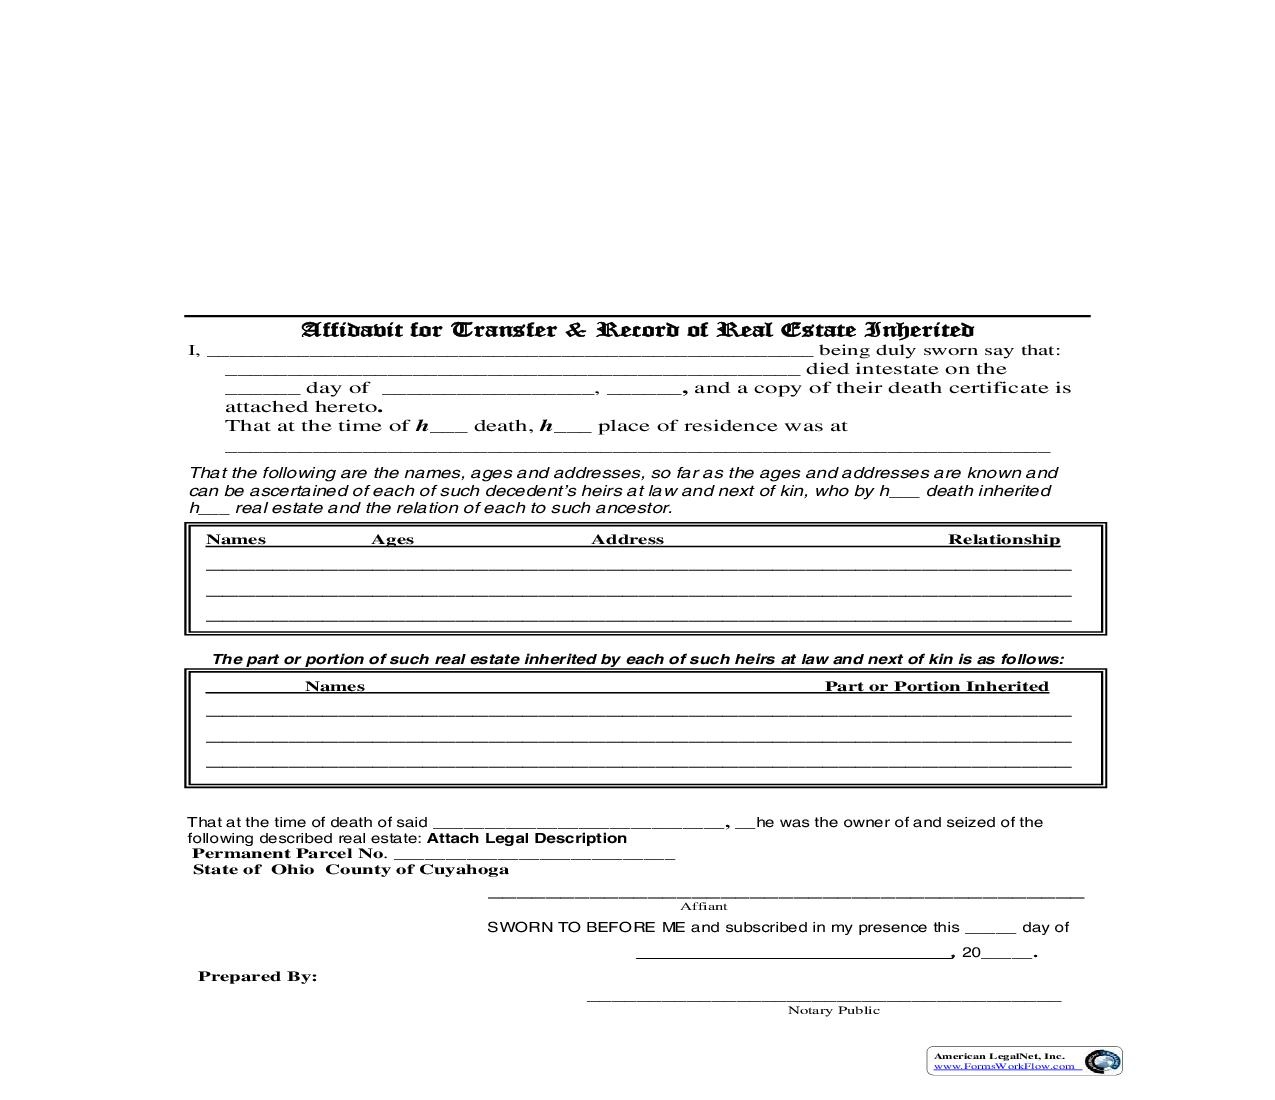 Cuyahoga County Affidavit For Transfer And Record Of Real Estate Inherited   Pdf Fpdf Doc Docx   Ohio